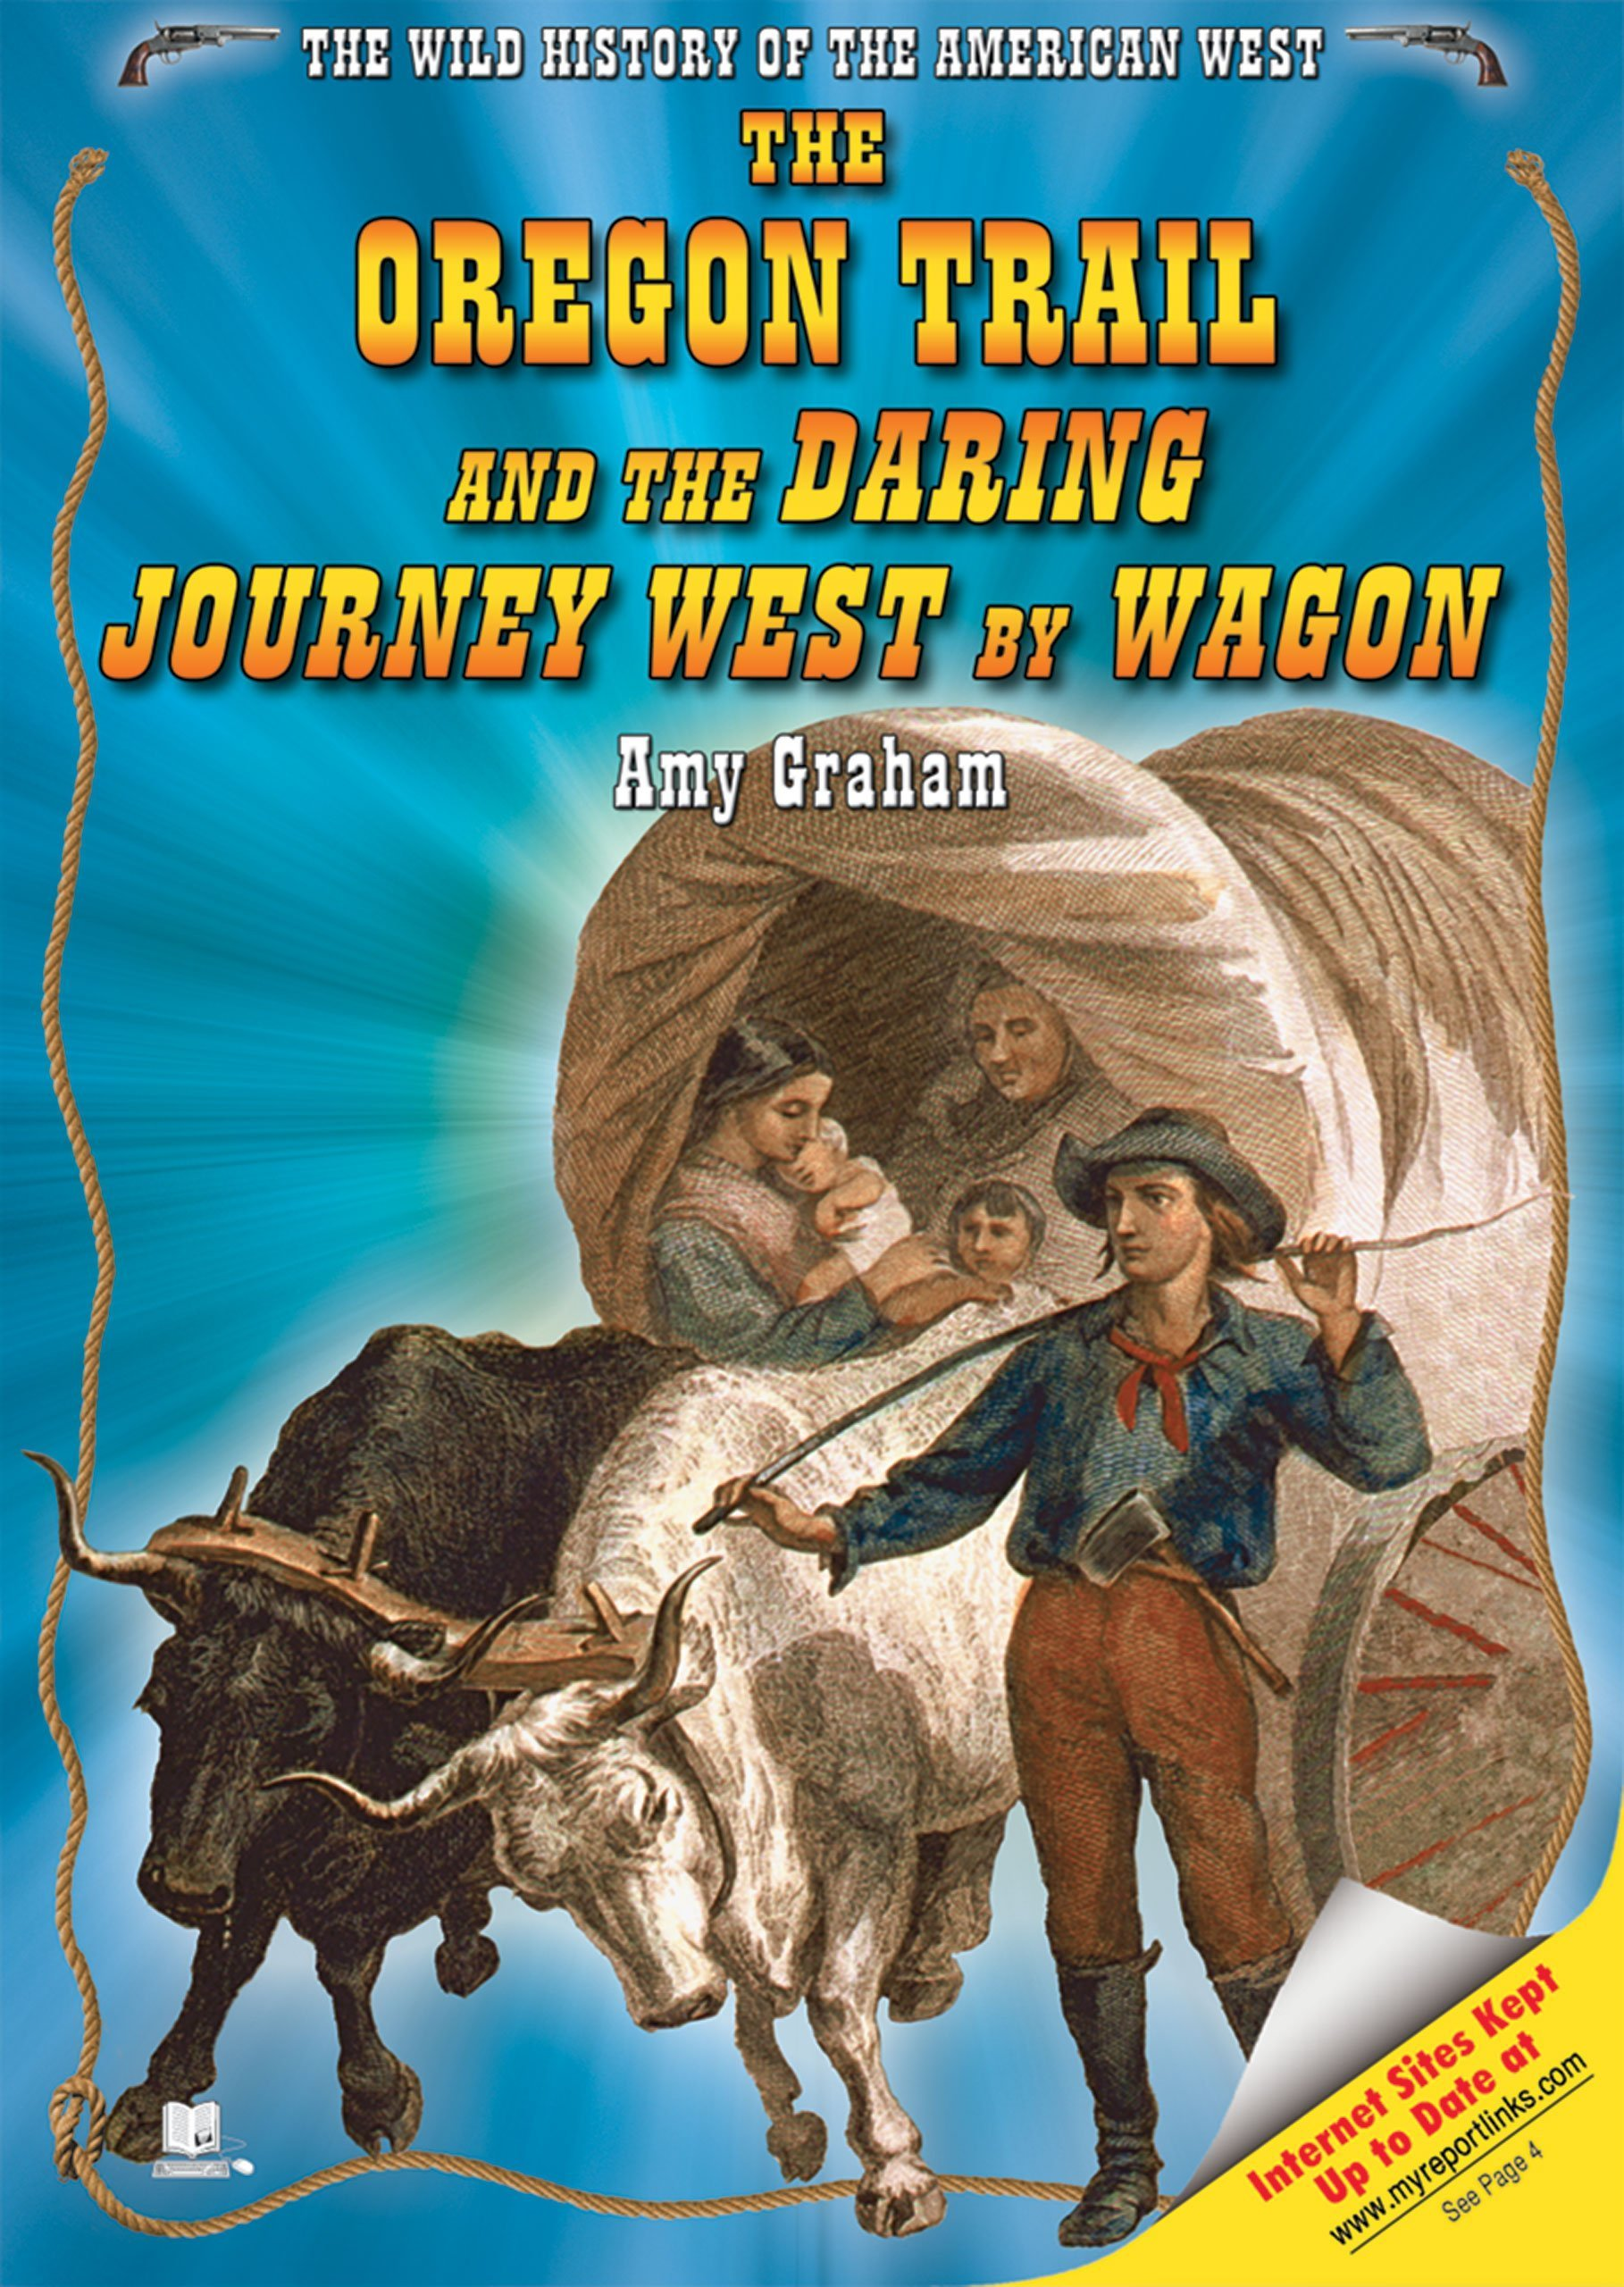 Download The Oregon Trail And the Daring Journey West by Wagon (The Wild History of the American West) PDF